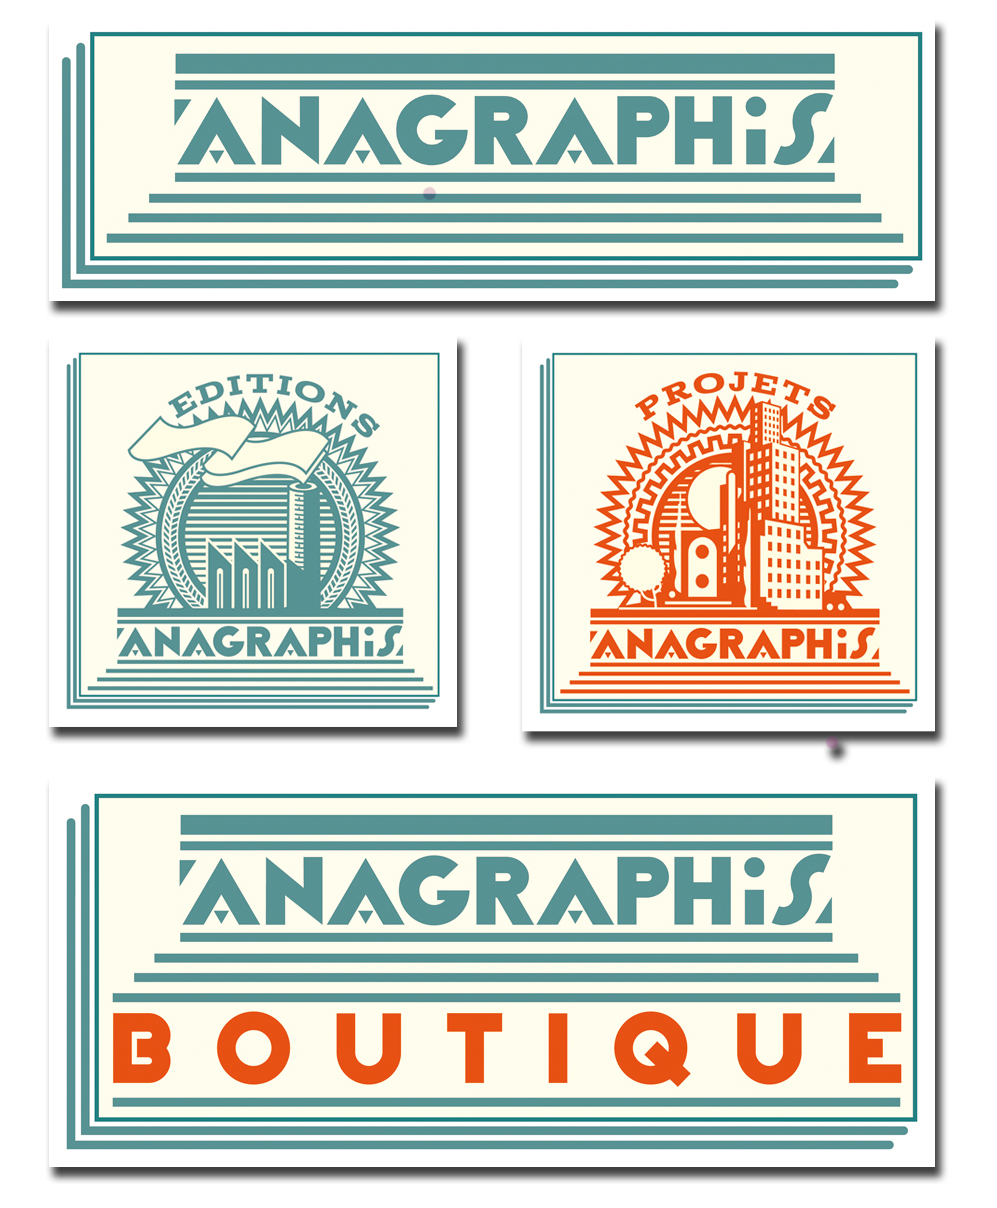 Planche Anagraphis logos